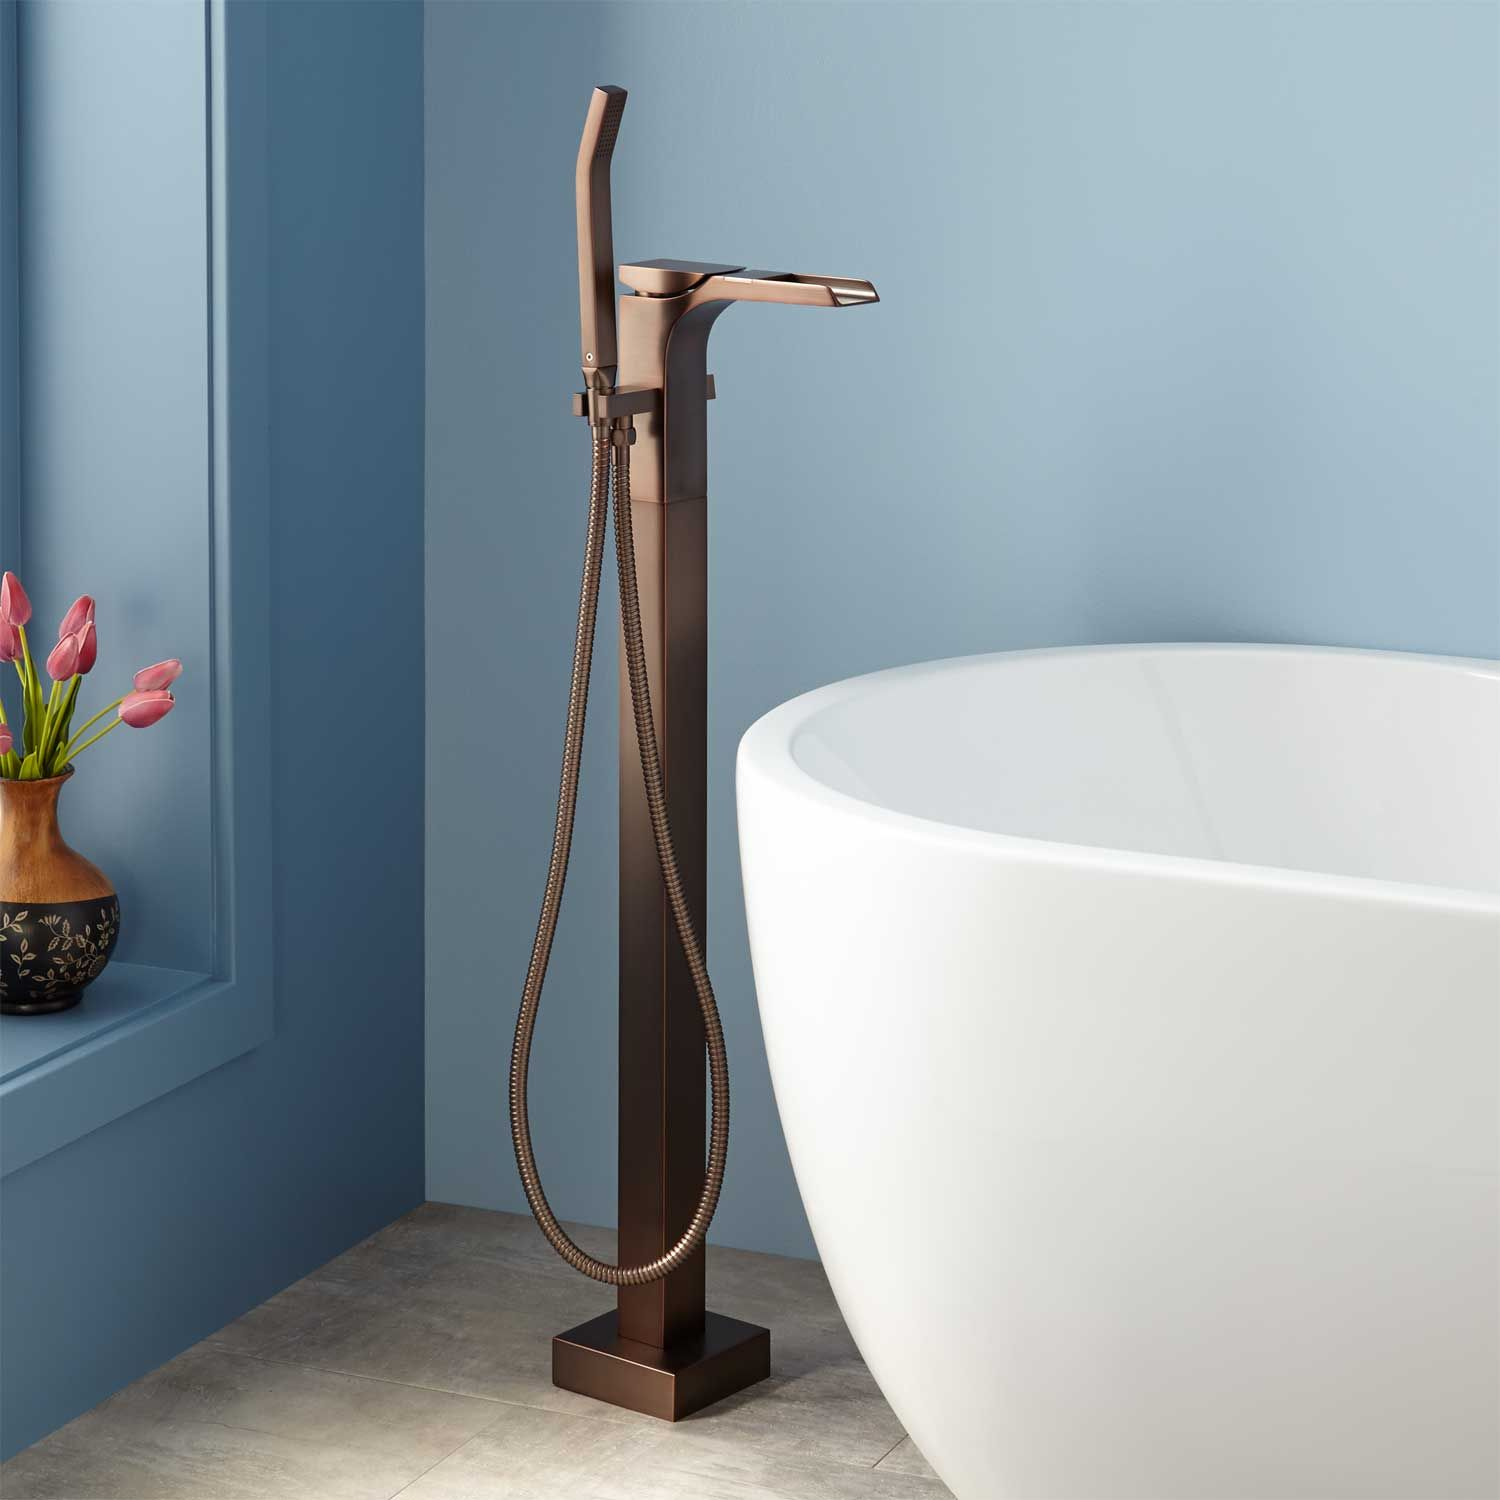 Willis Freestanding Waterfall Tub Faucet | Faucet, Tubs and Oil ...